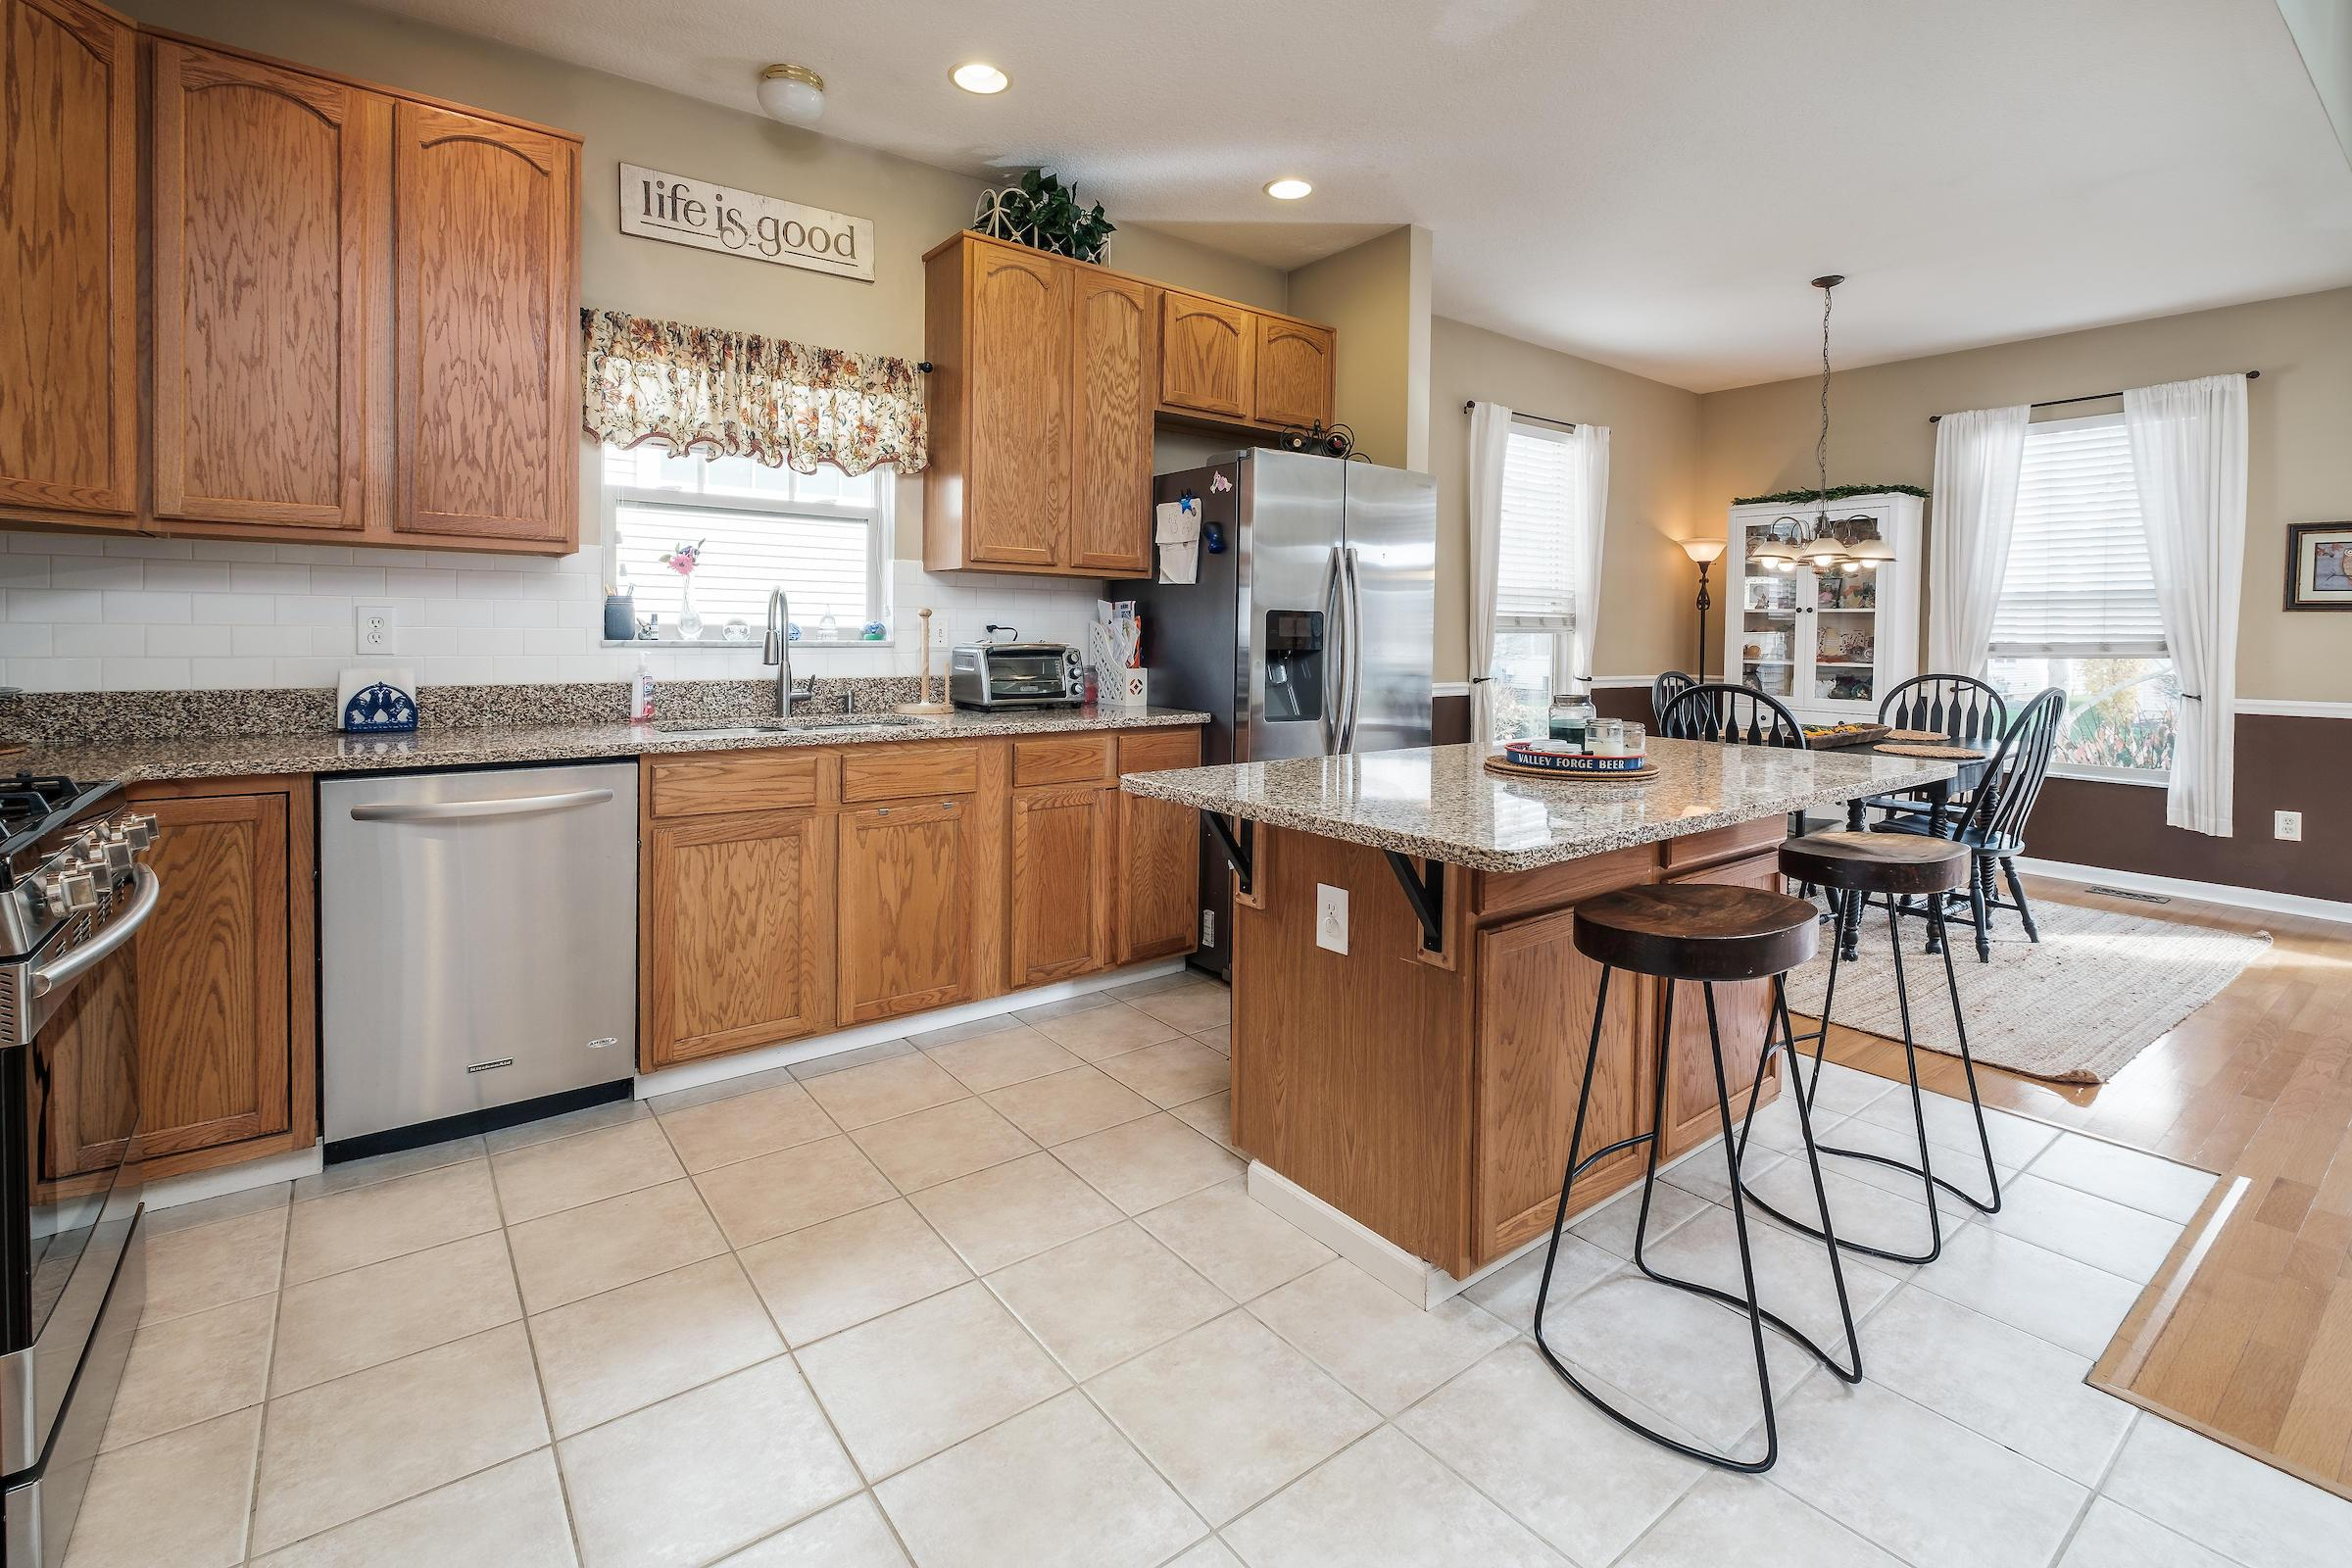 6015 Coventry Bend Drive, Hilliard, Ohio 43026, 3 Bedrooms Bedrooms, ,4 BathroomsBathrooms,Residential,For Sale,Coventry Bend,220040230